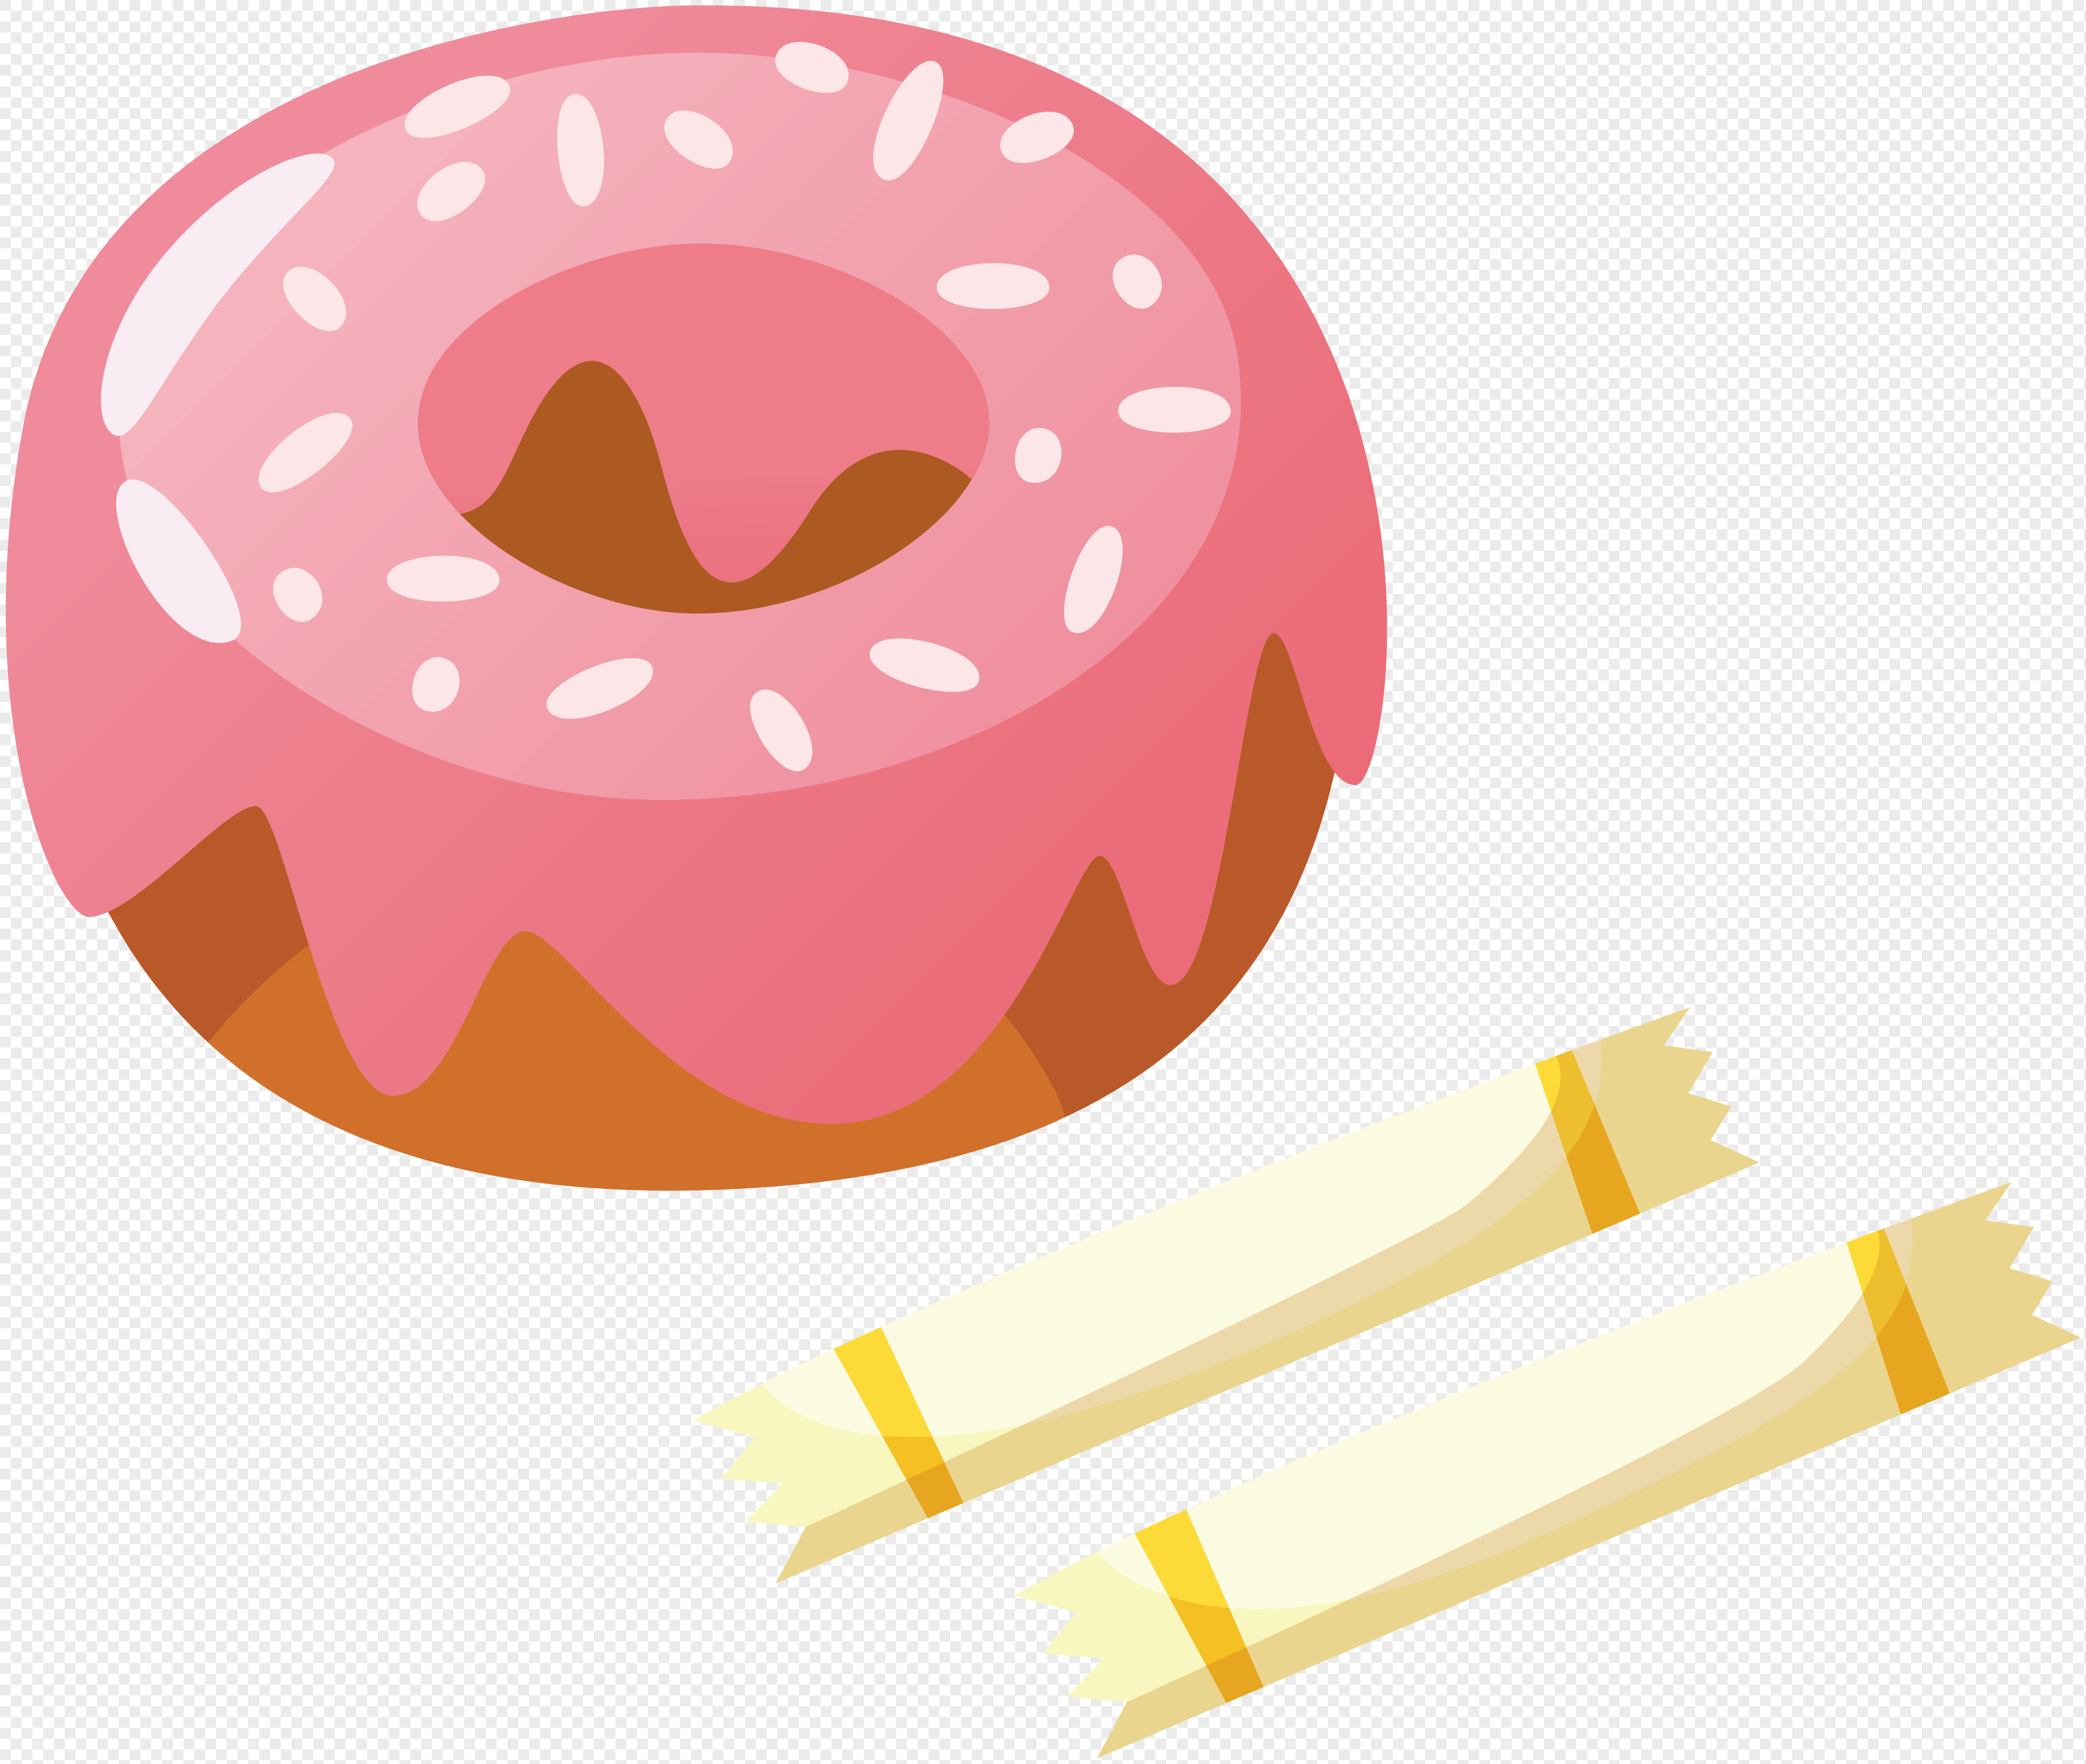 3864x3267 Hand Painted Cartoon Food Food Candy Vector Material Png